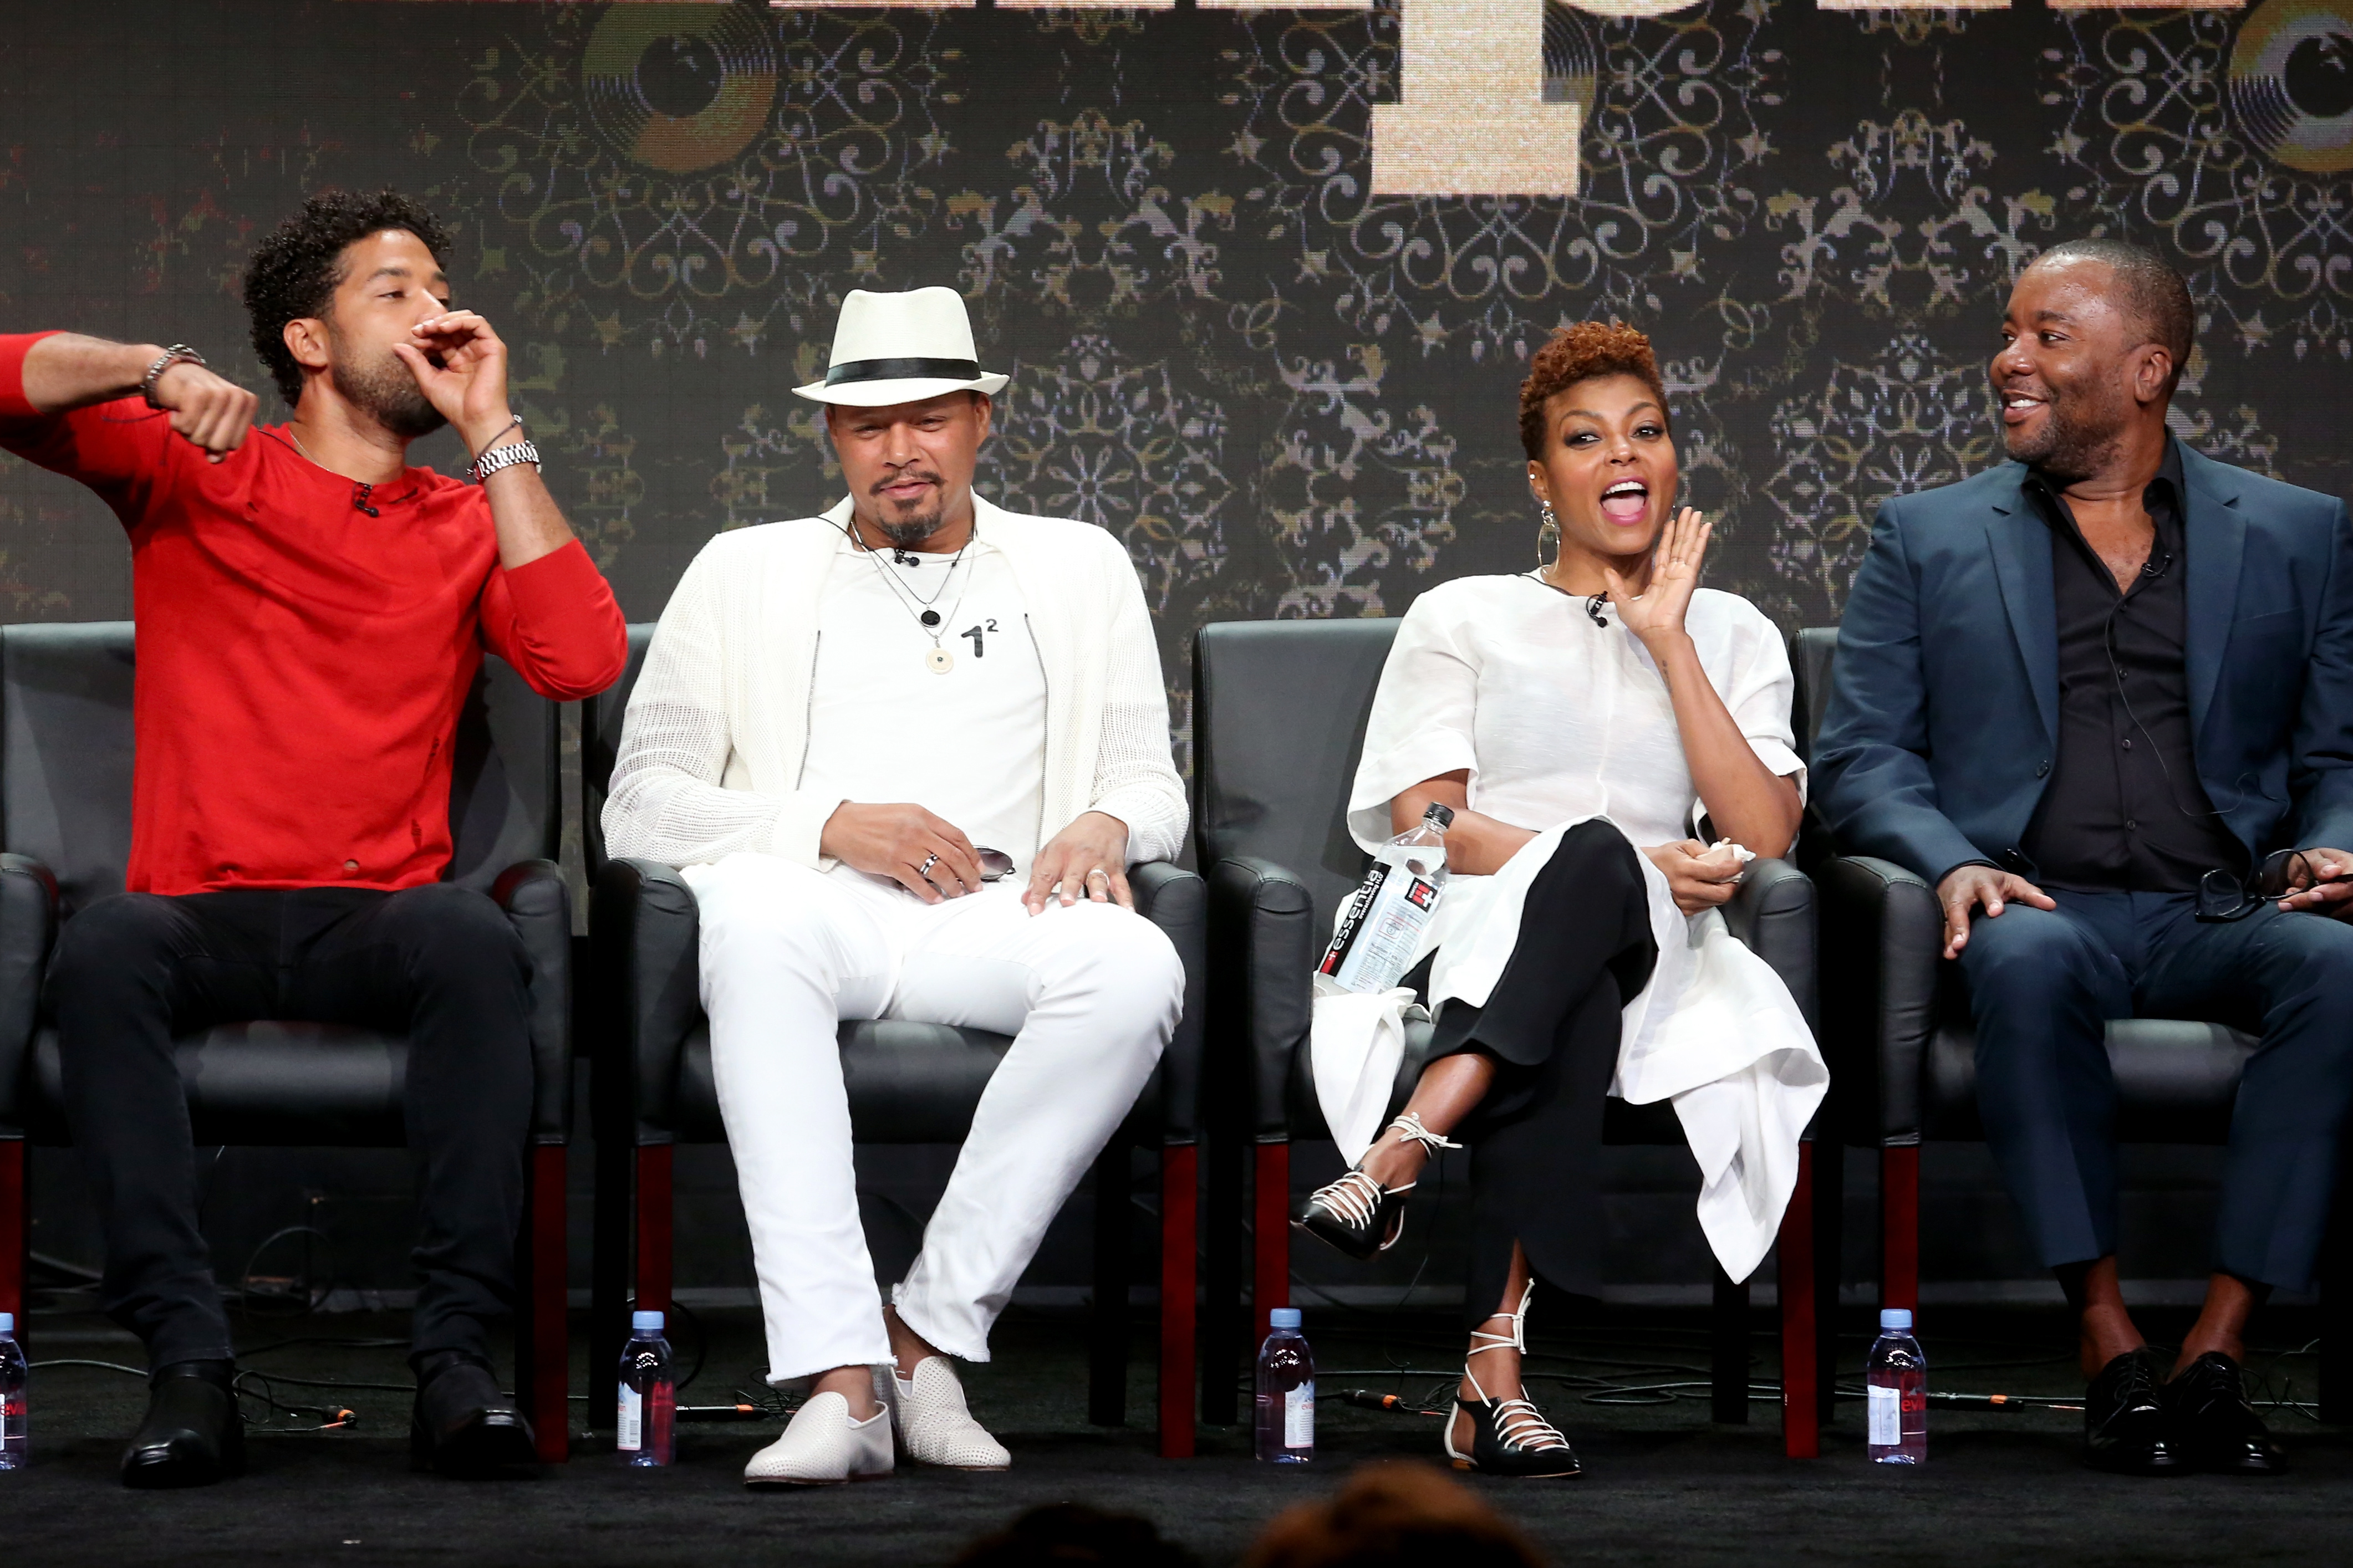 (L-R) Actors Jussie Smollett, Terrence Howard, Taraji P. Henson, and Co-Creator/Writer/Executive Producer Lee Daniels of 'Empire' speak onstage during the FOX portion of the 2017 Summer Television Critics Association Press Tour at The Beverly Hilton Hotel on August 8, 2017 in Beverly Hills, California. (Photo by Frederick M. Brown/Getty Images)